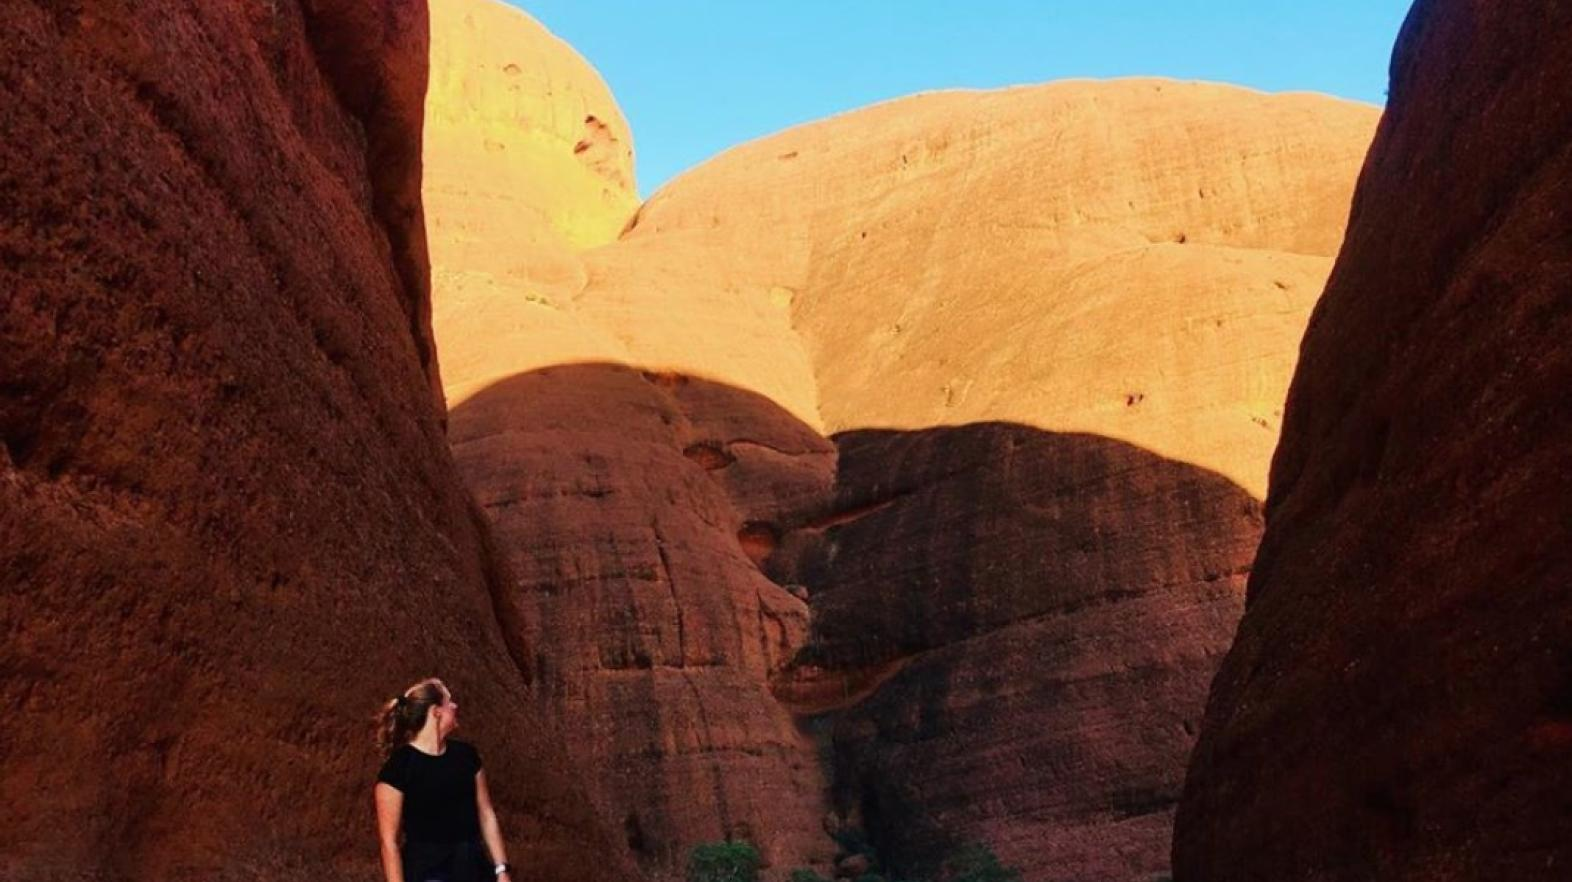 A study abroad student stands in front of a canyon.